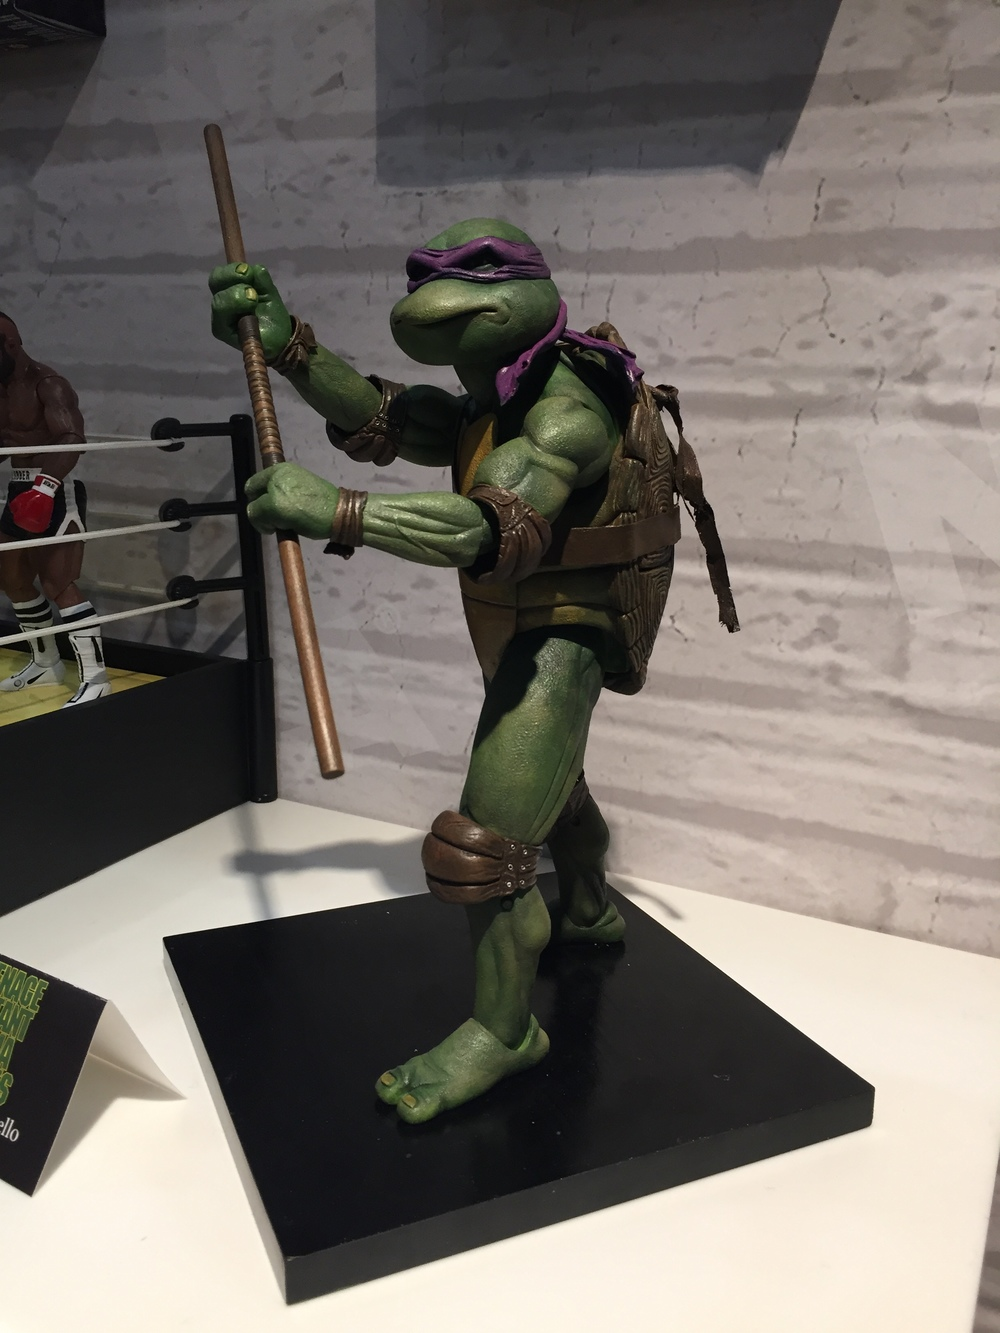 Prototype 1/4 scale Donatello from the 90s Ninja Turtles movies.